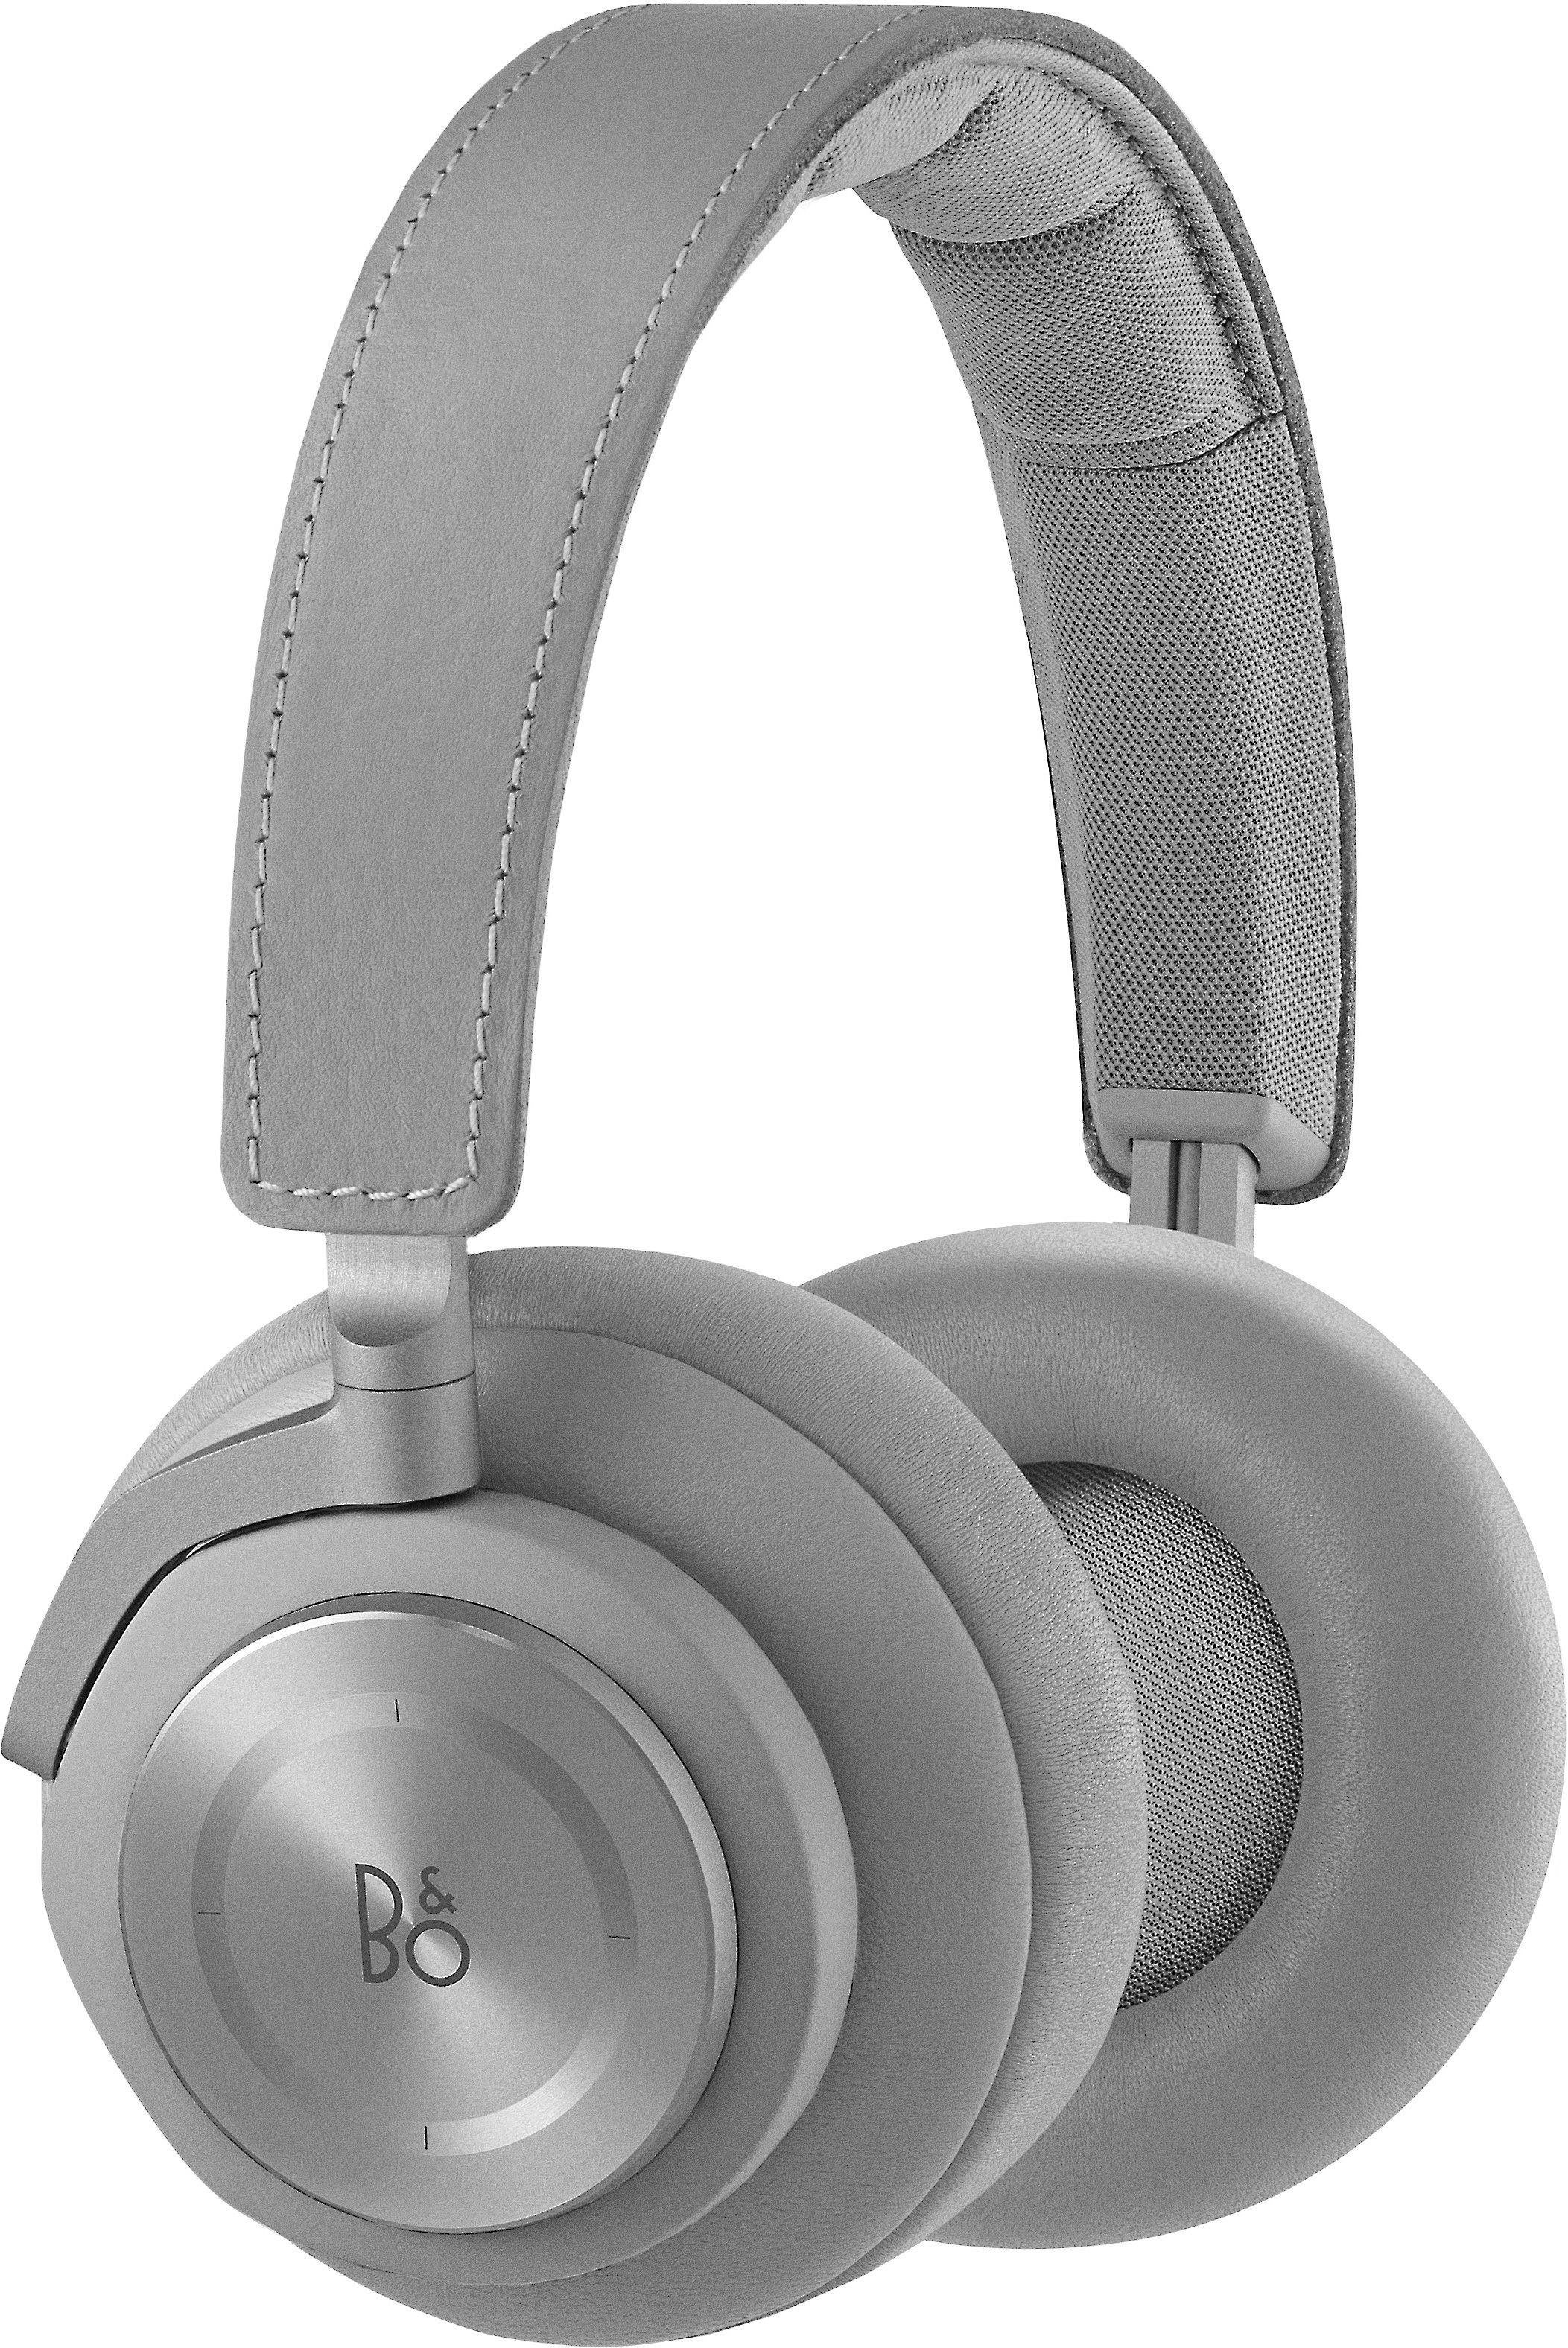 0666cc90a74dfc B&O PLAY Beoplay H7 by Bang & Olufsen (Cenere Grey) Wireless Bluetooth® over -ear headphones at Crutchfield.com